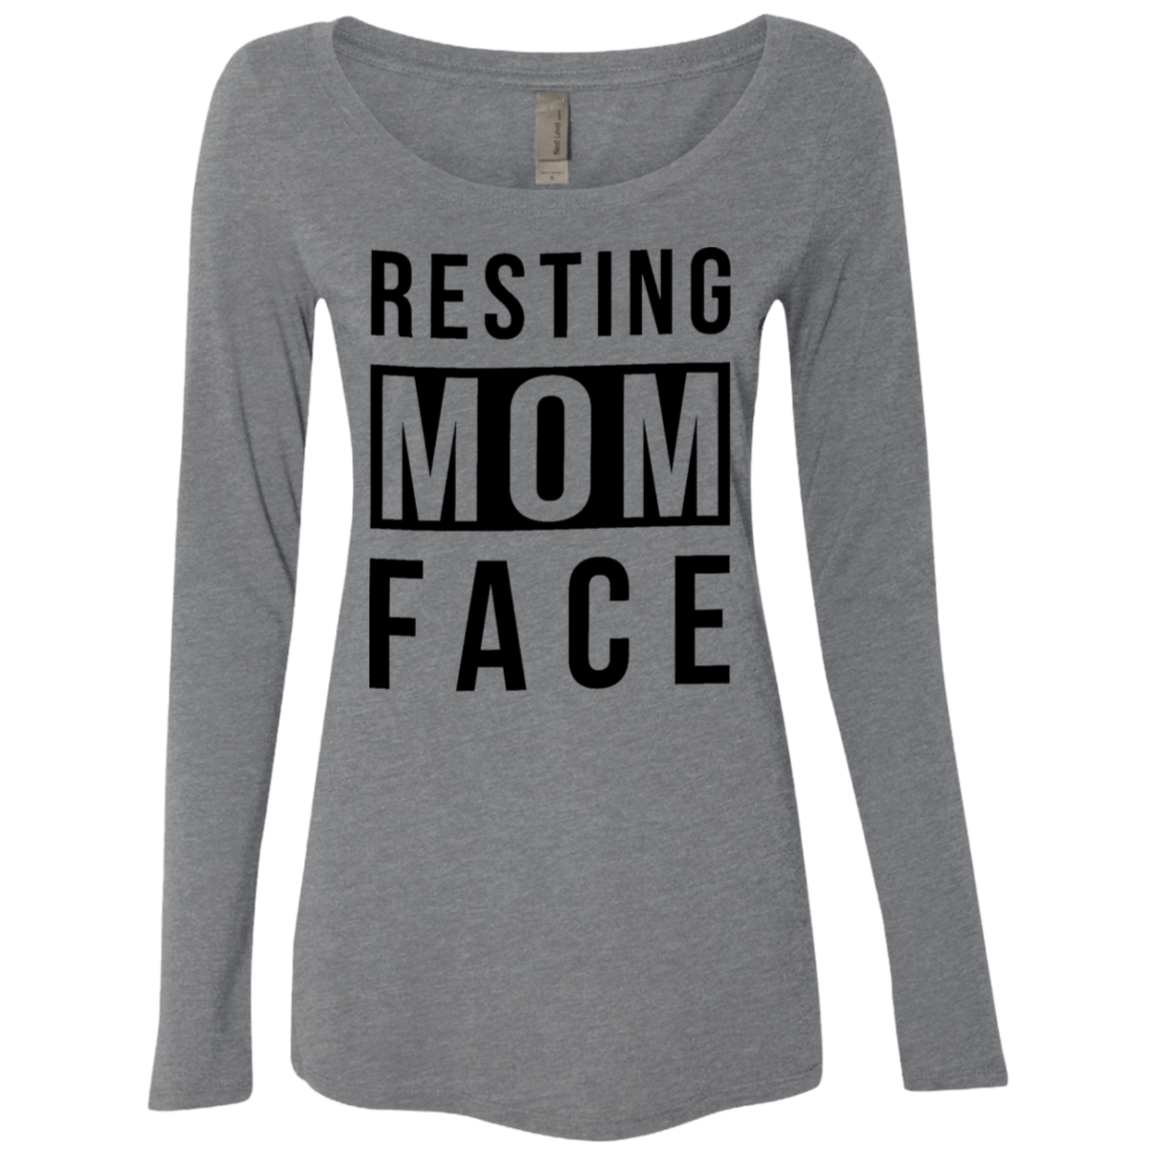 Resisting Mom Face Women's Long Sleeve Tee